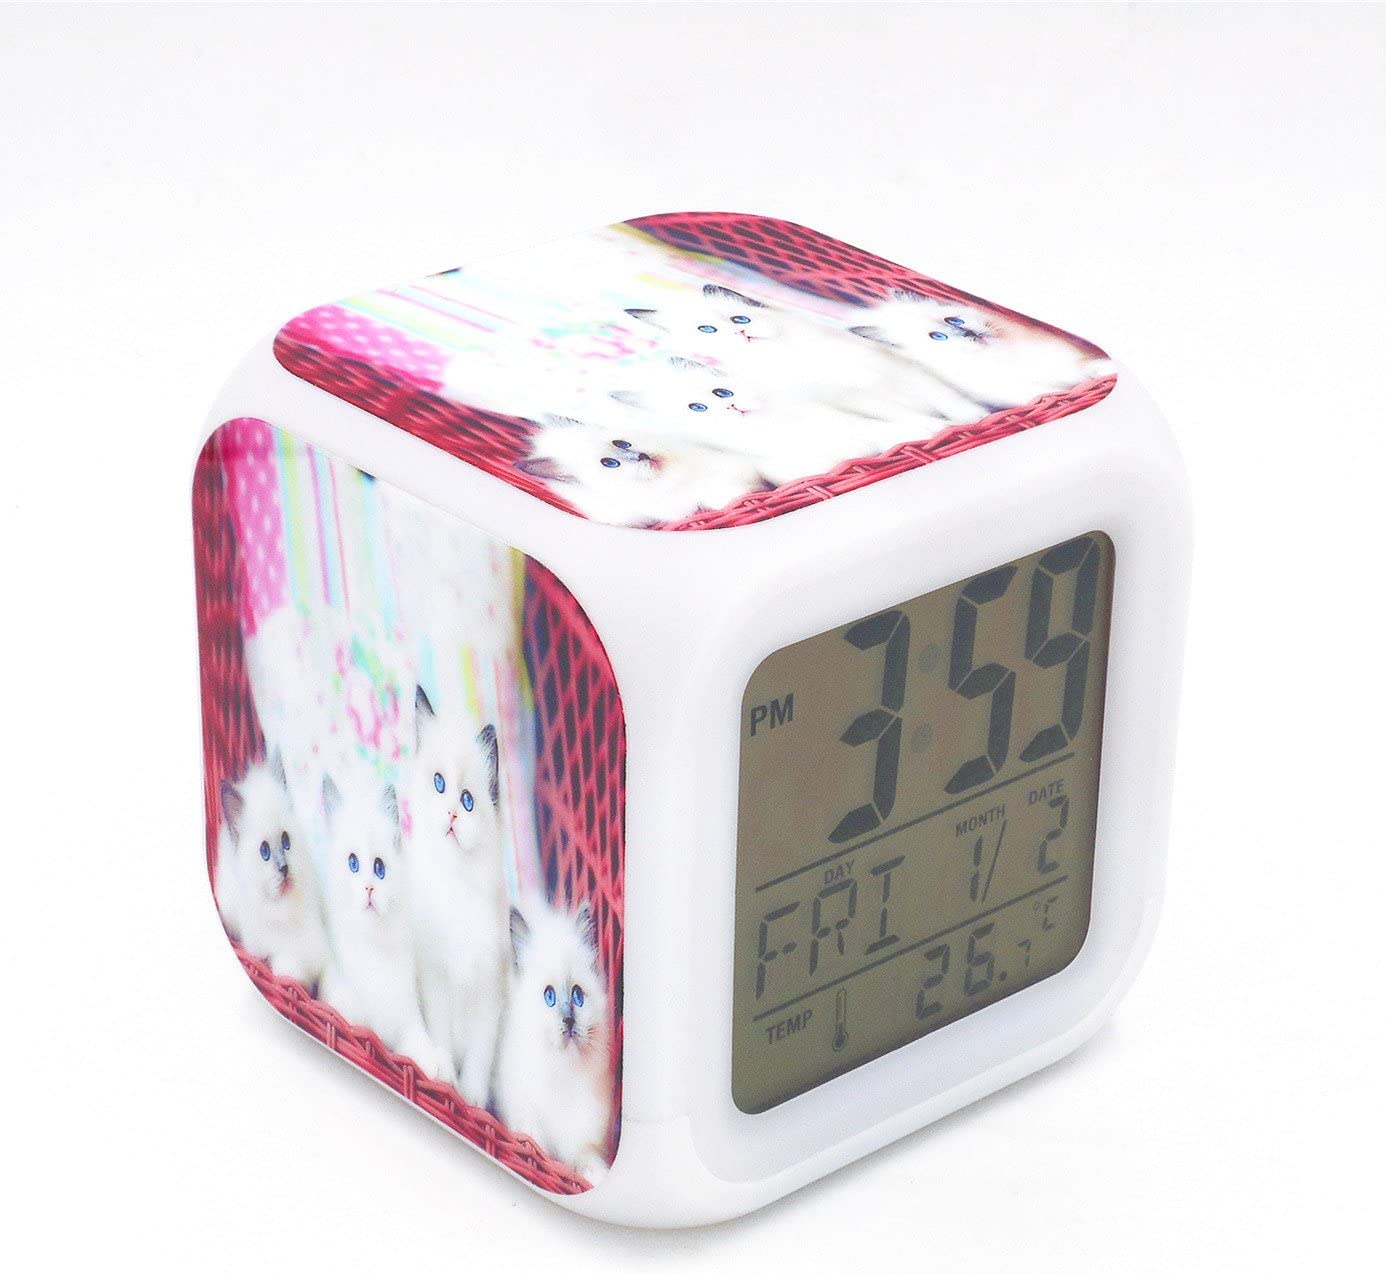 BoFy Led Alarm Clock Ragdoll Cat Kitty Pattern Personality Creative Noiseless Multi-Functional Electronic Desk Table Digital Alarm Clock for Unisex Adults Kids Toy Gift